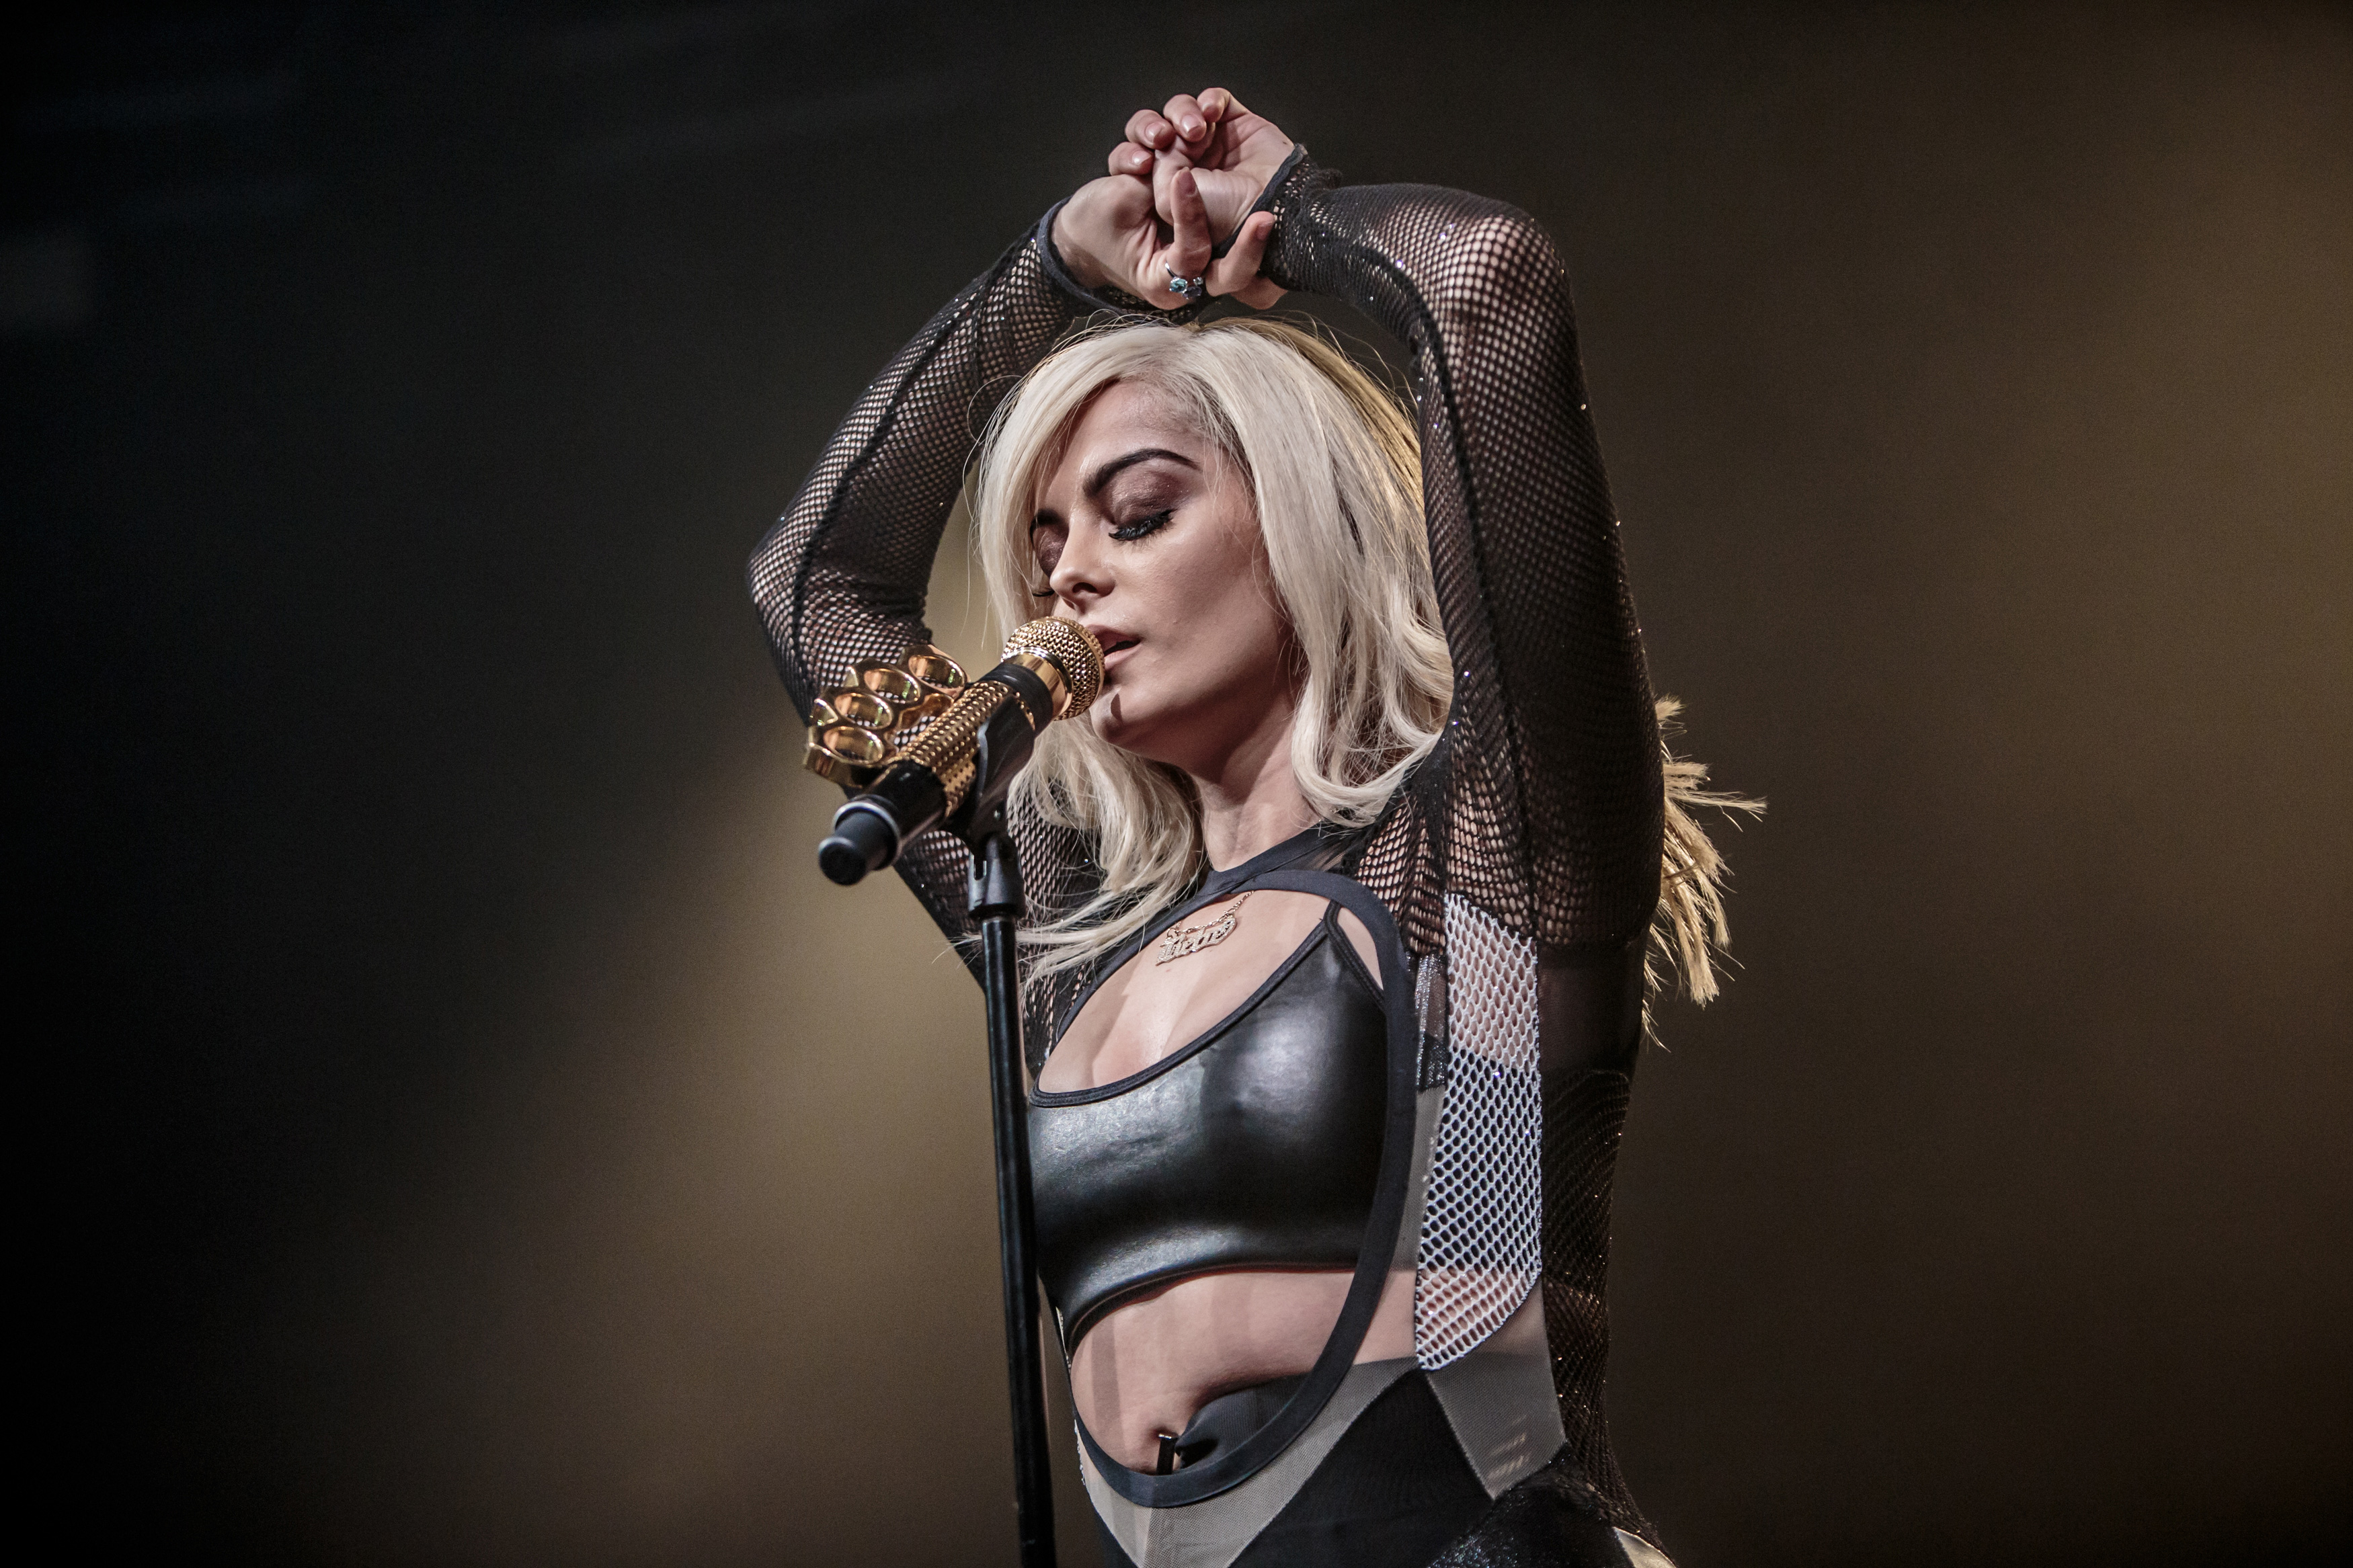 bebe rexha performing wallpaper background 62553